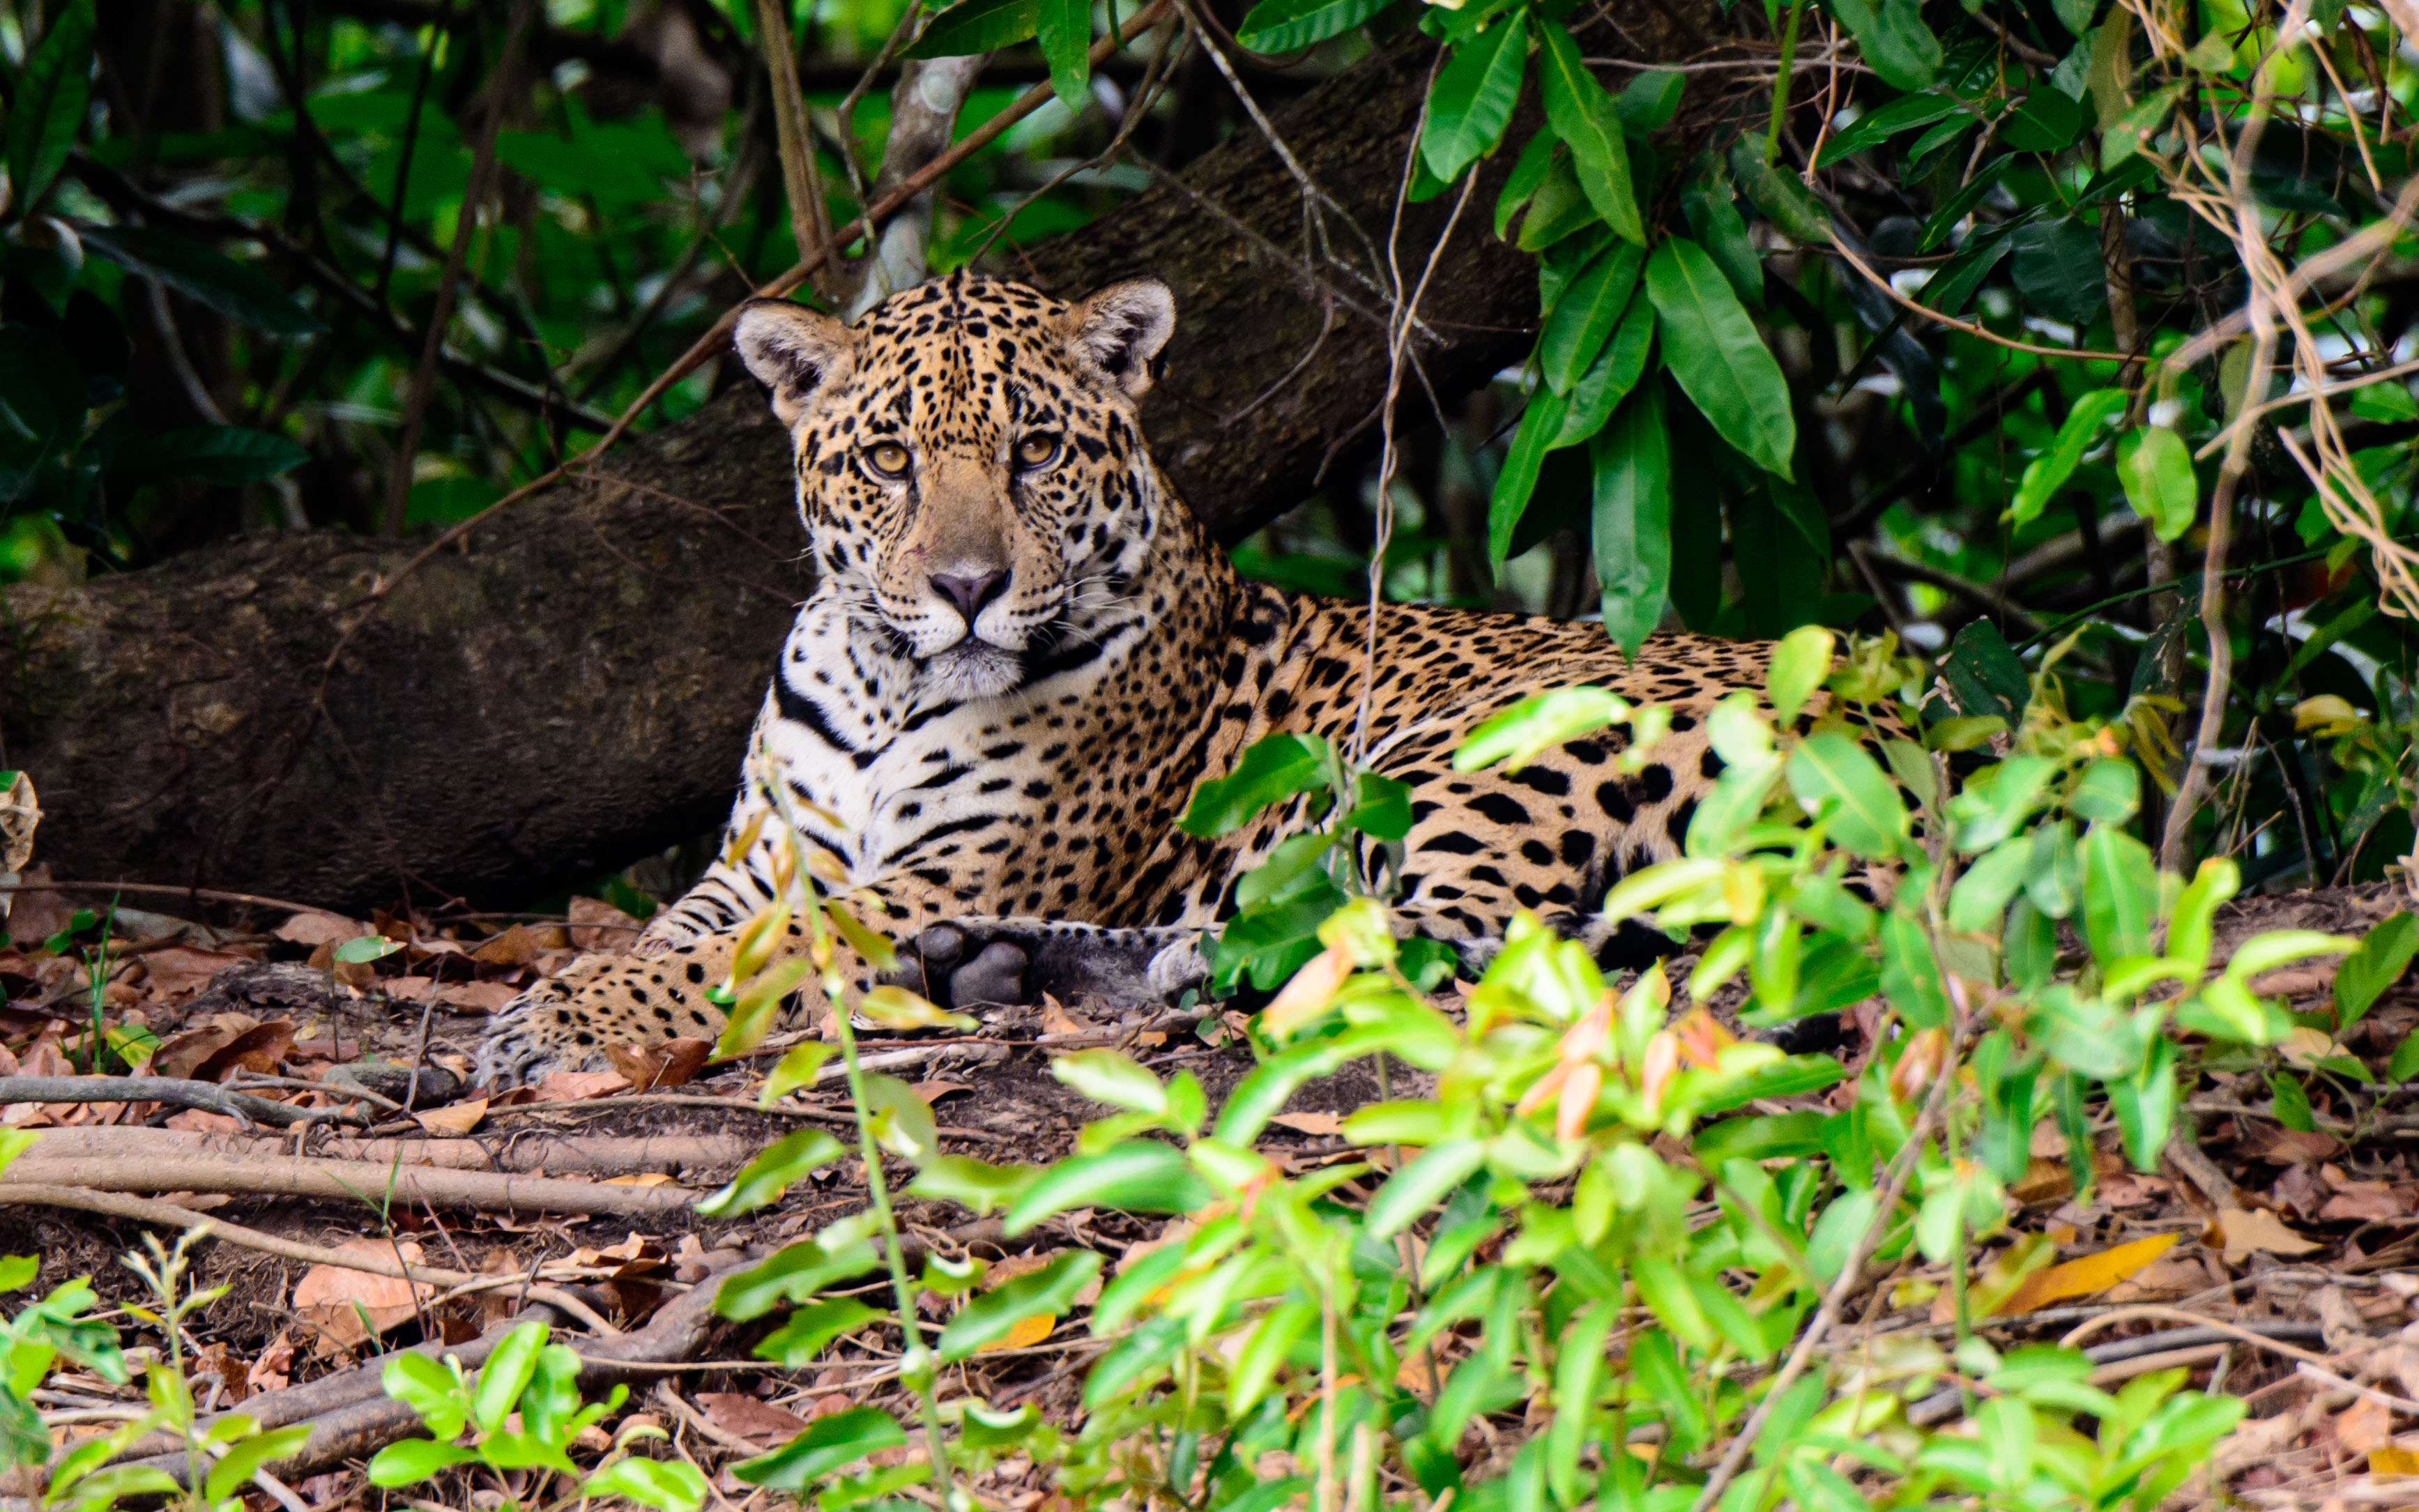 Jaguar recovery plan devised to save the majestic cat from extinction